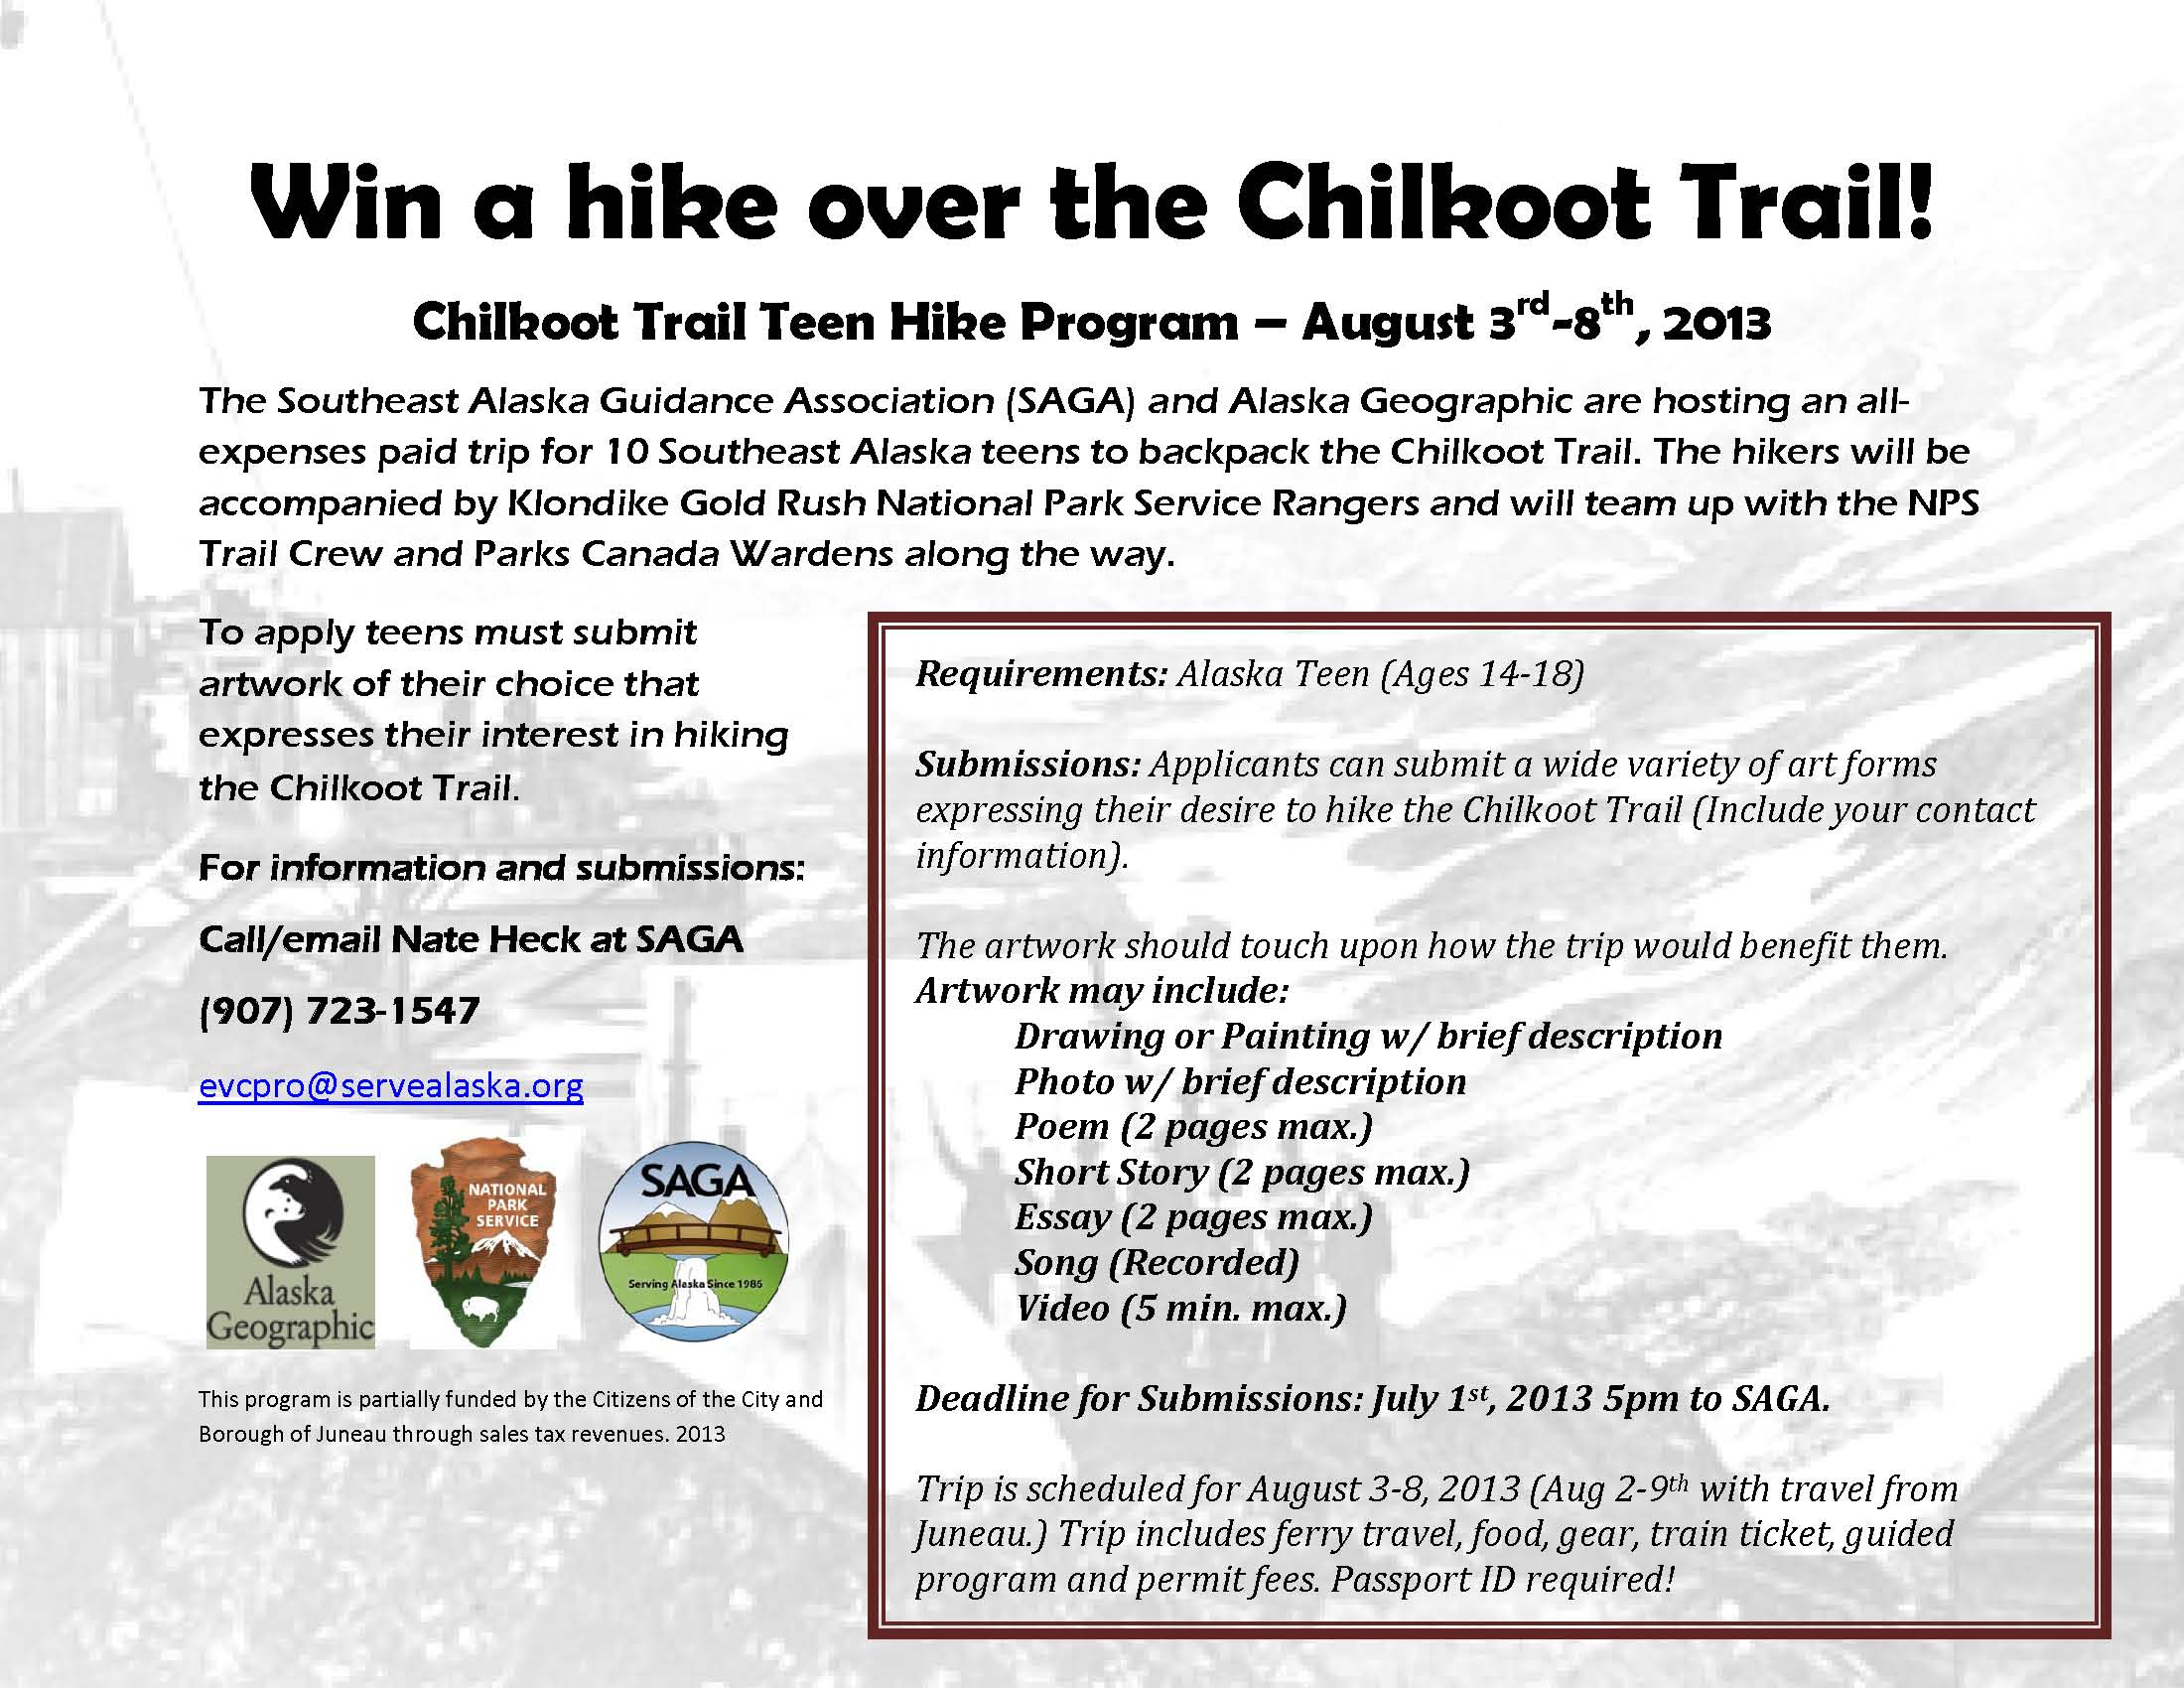 Win a hike over the Chilkoot Trail 2013